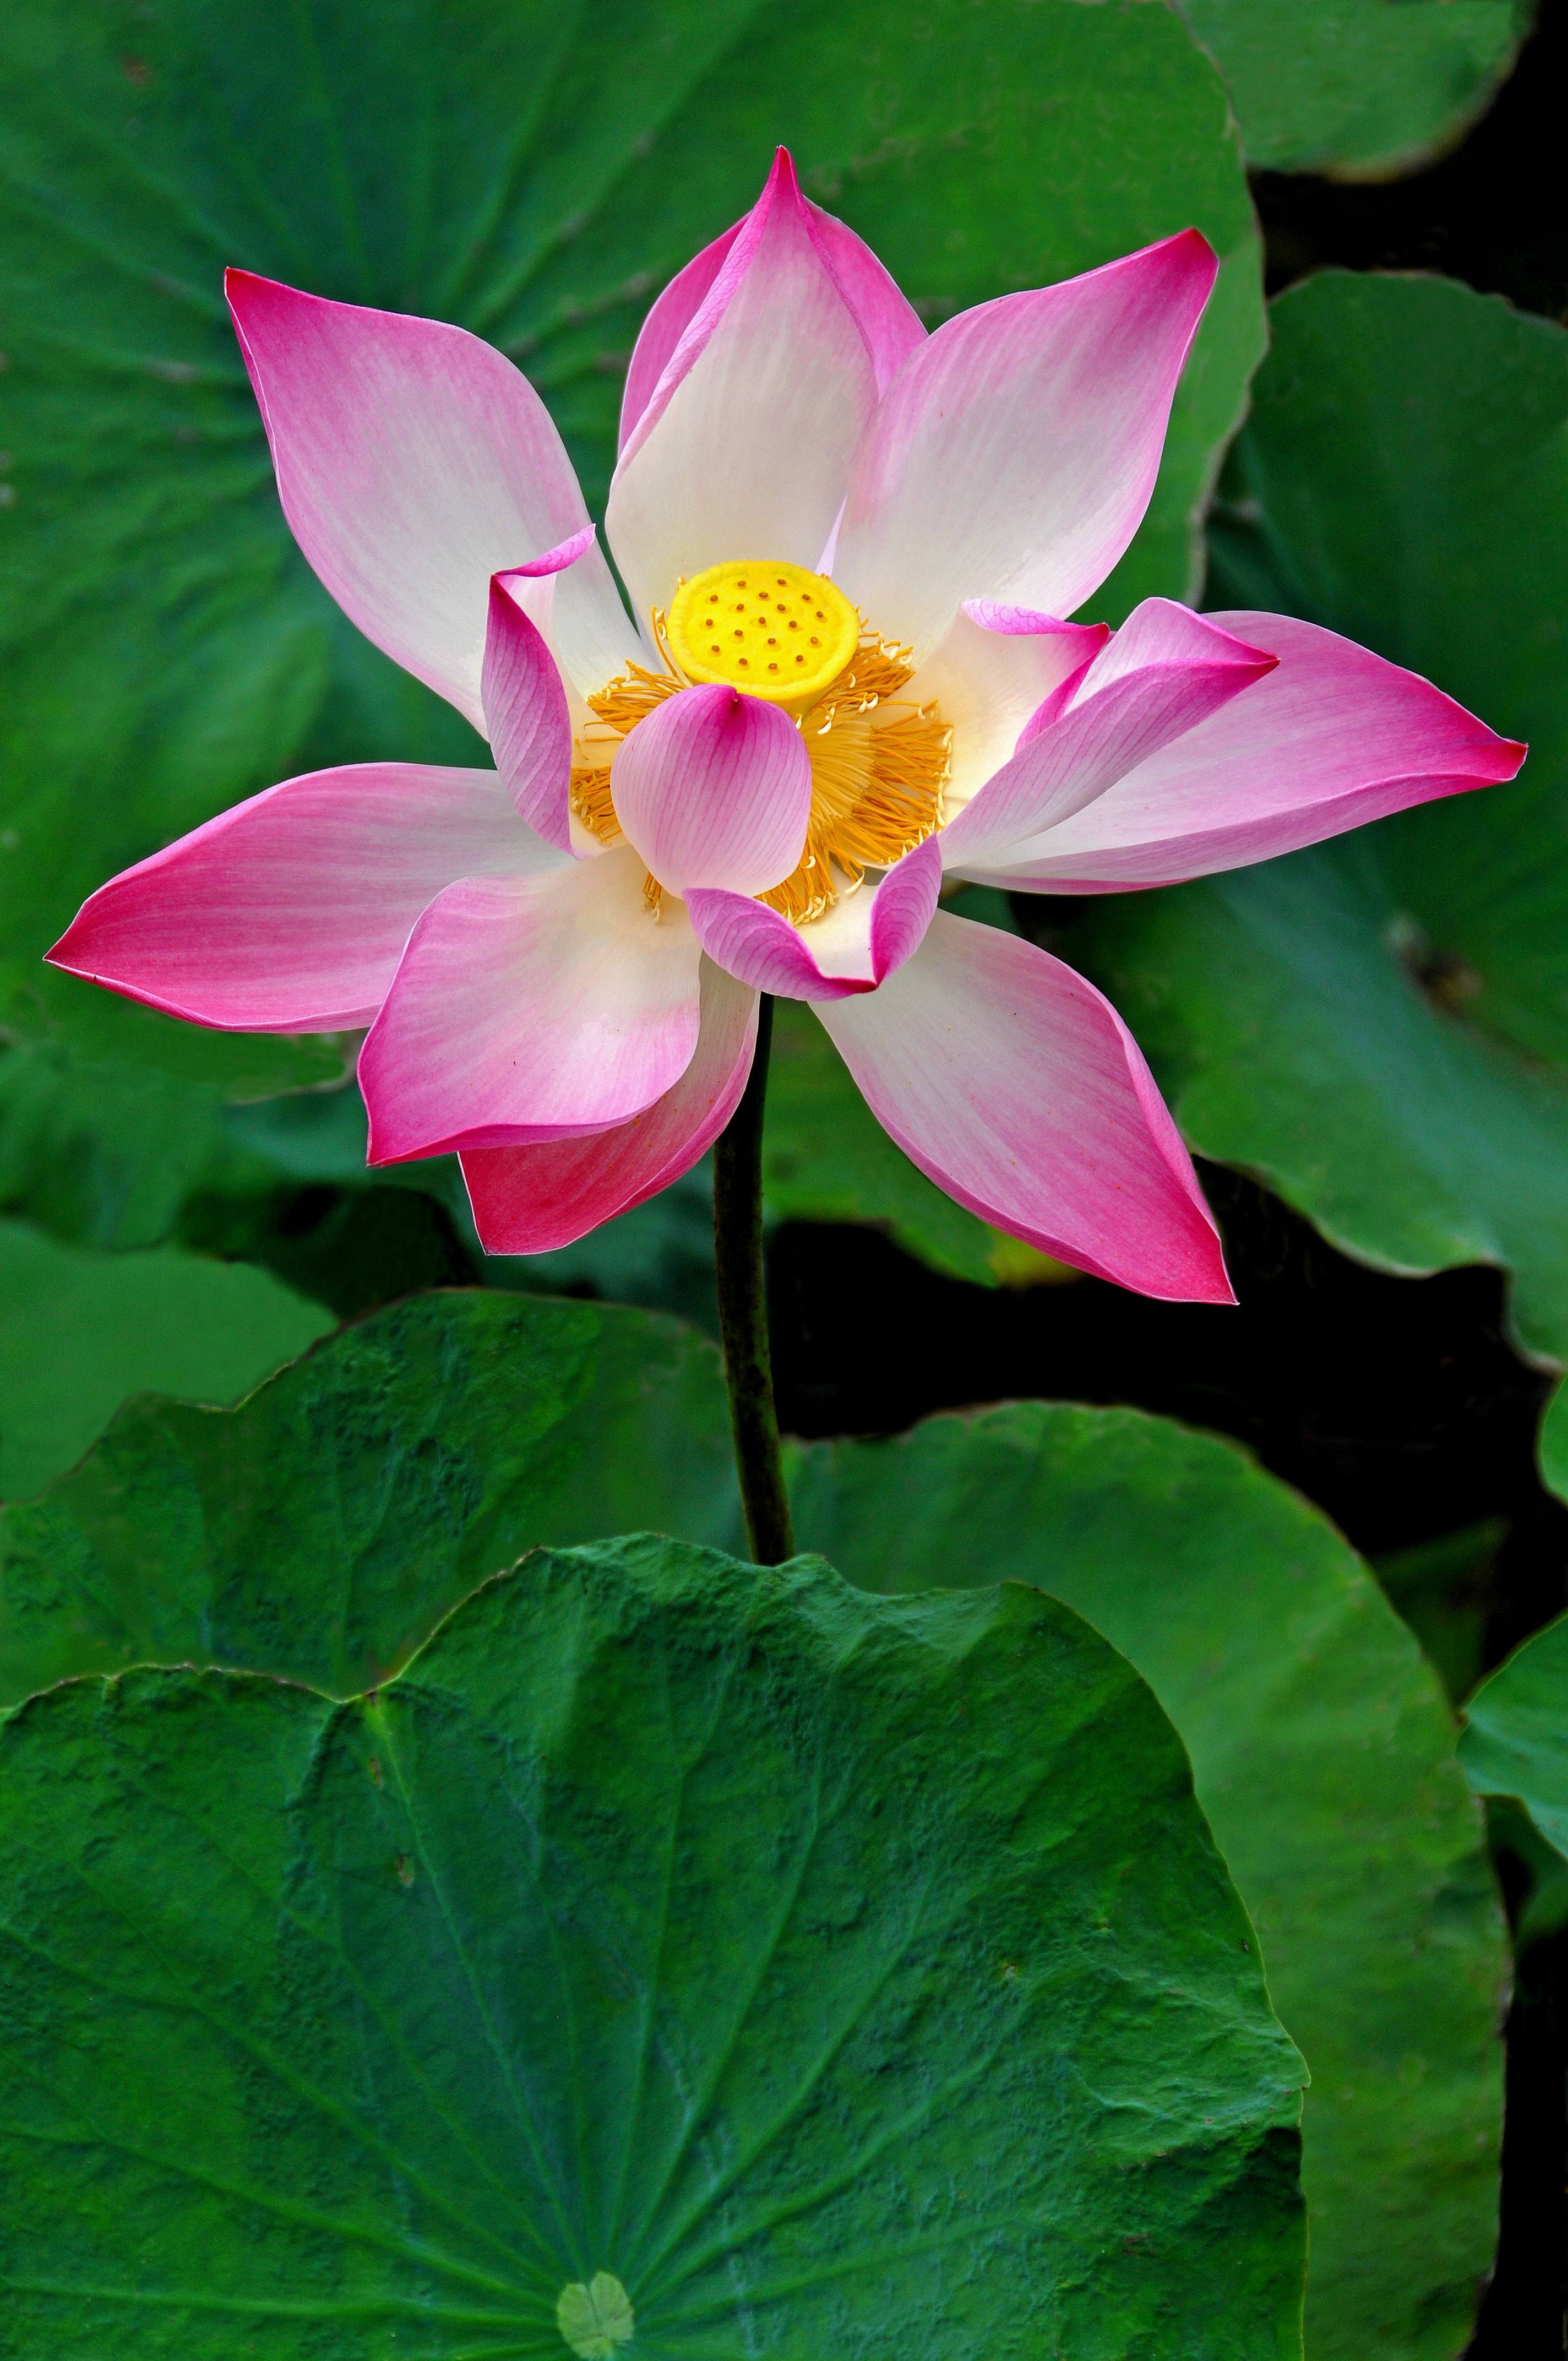 File:Lotus flower from the Mekong Delta, Vietnam.jpg - Wikimedia ...